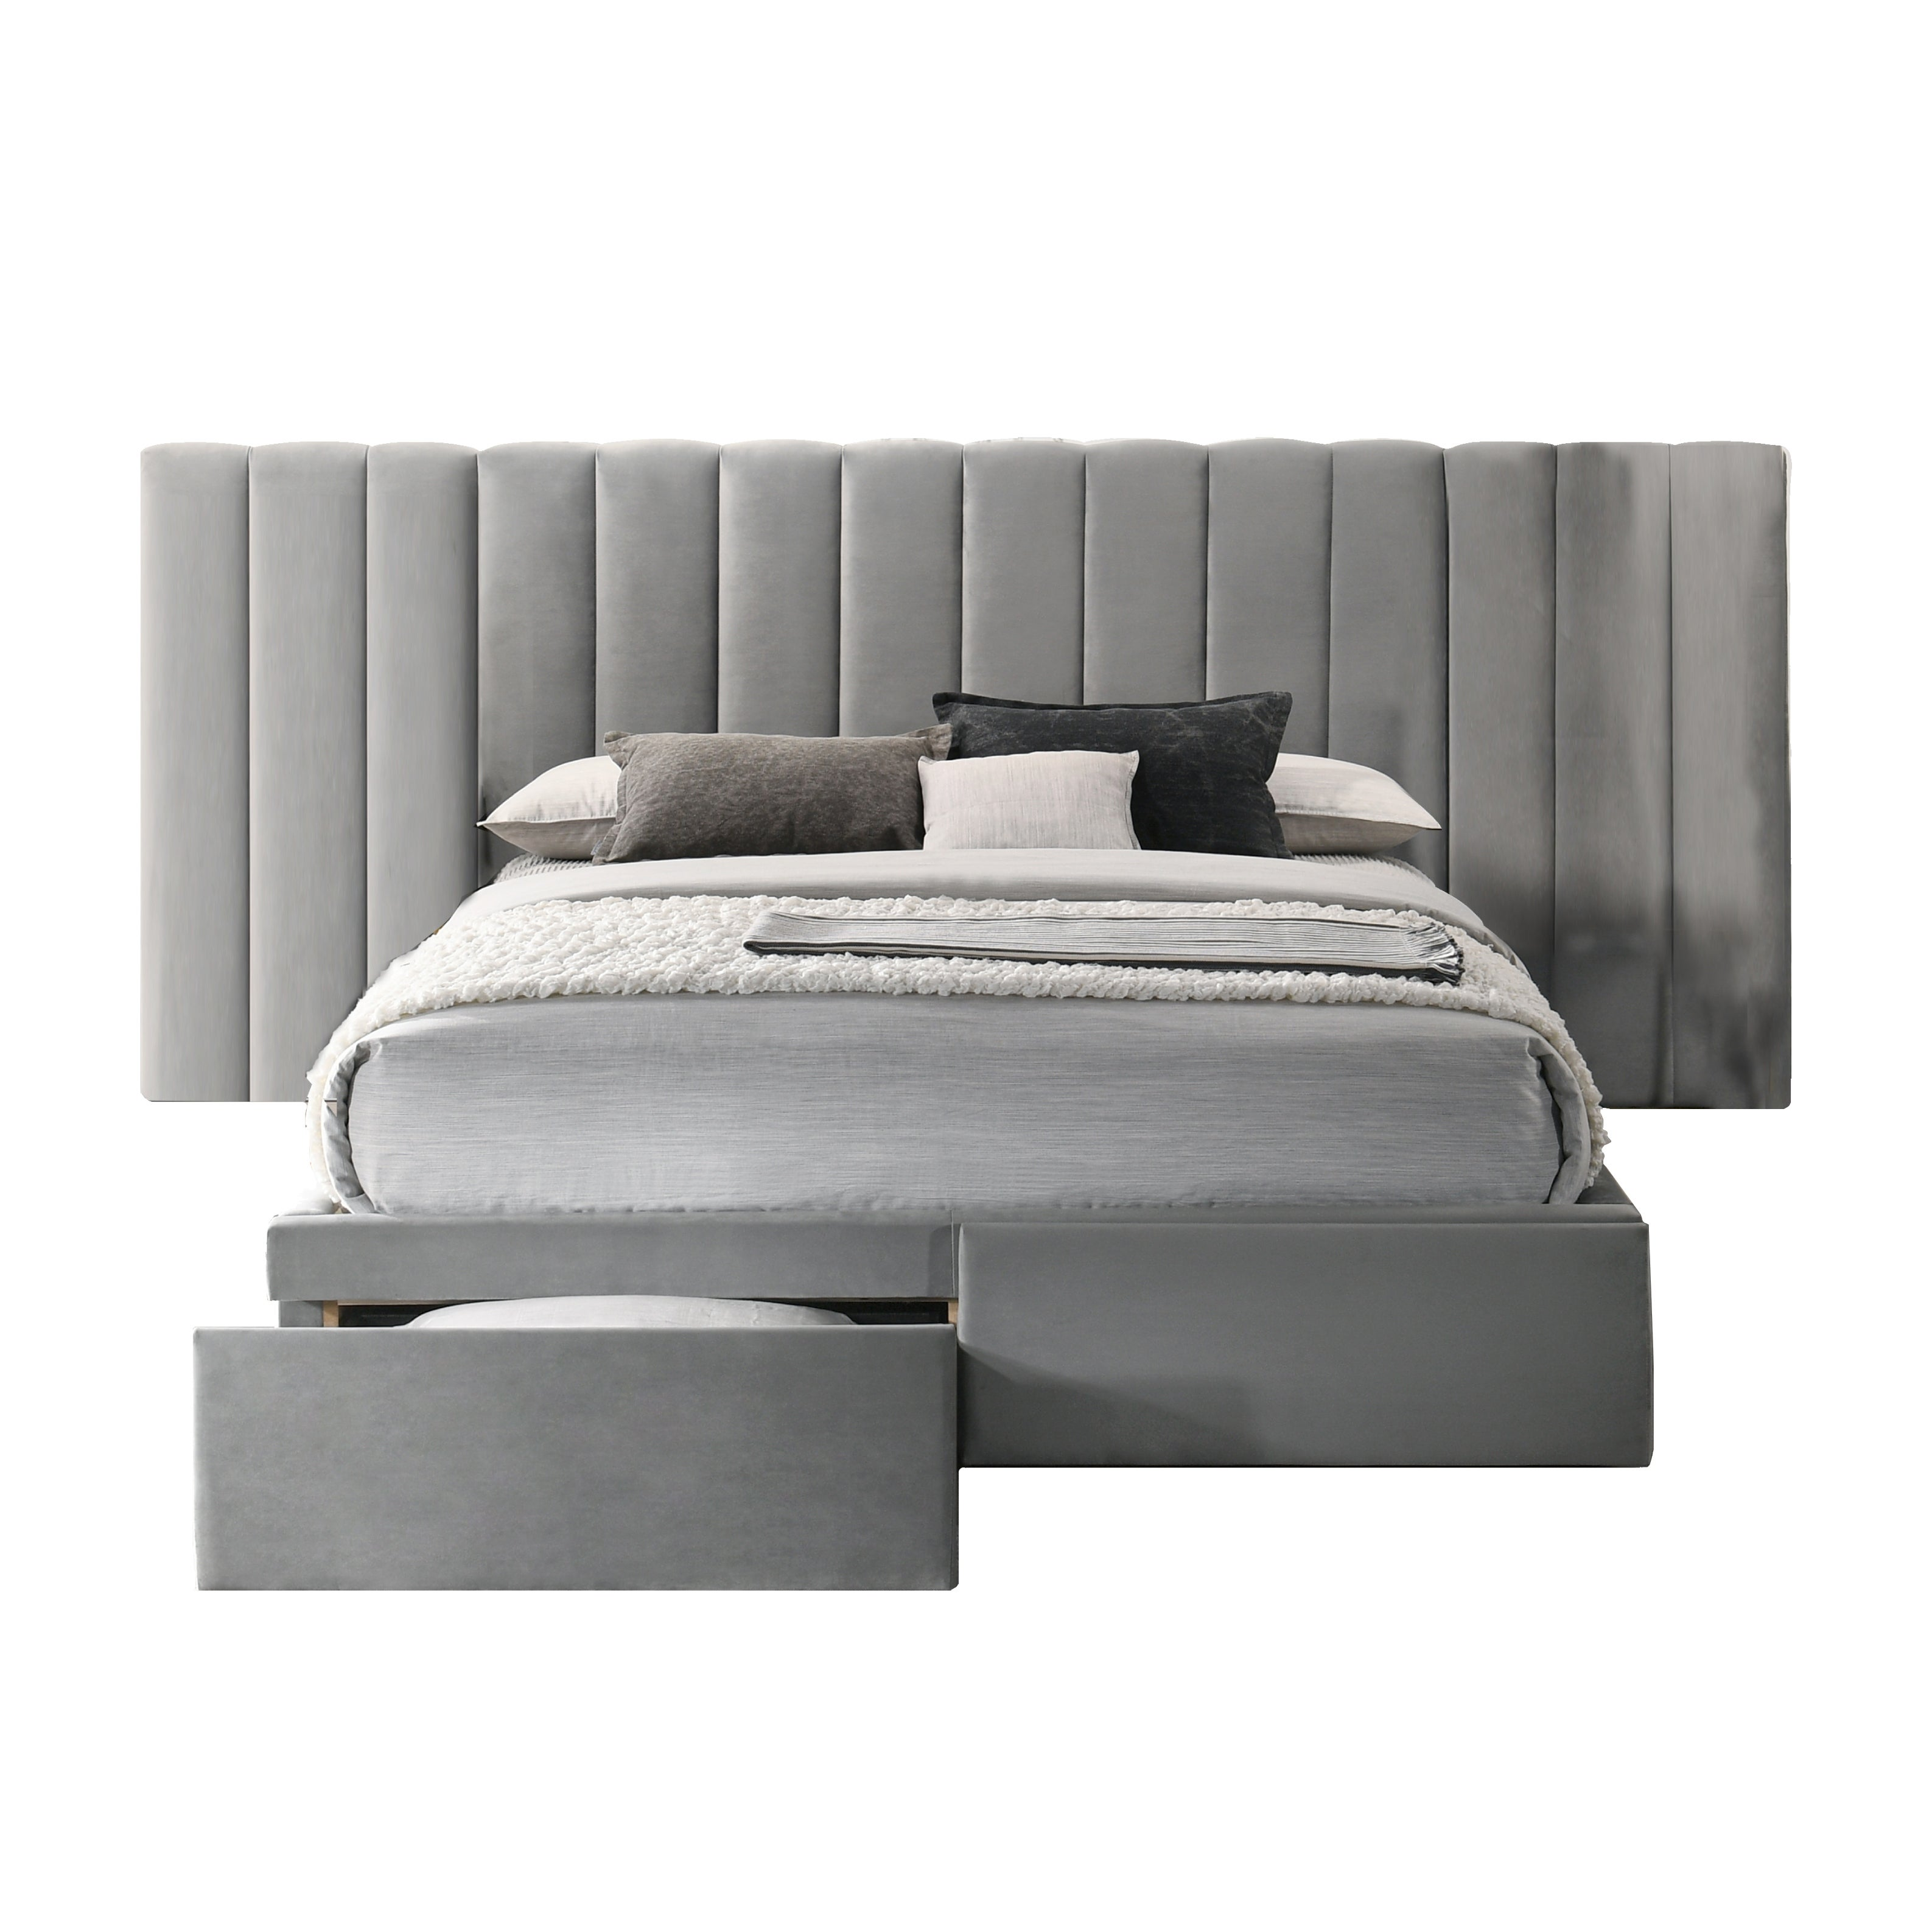 Faro Velvet Bed Frame With Extra Wide Headboard And Storage Overstock 31789786 Grey Queen